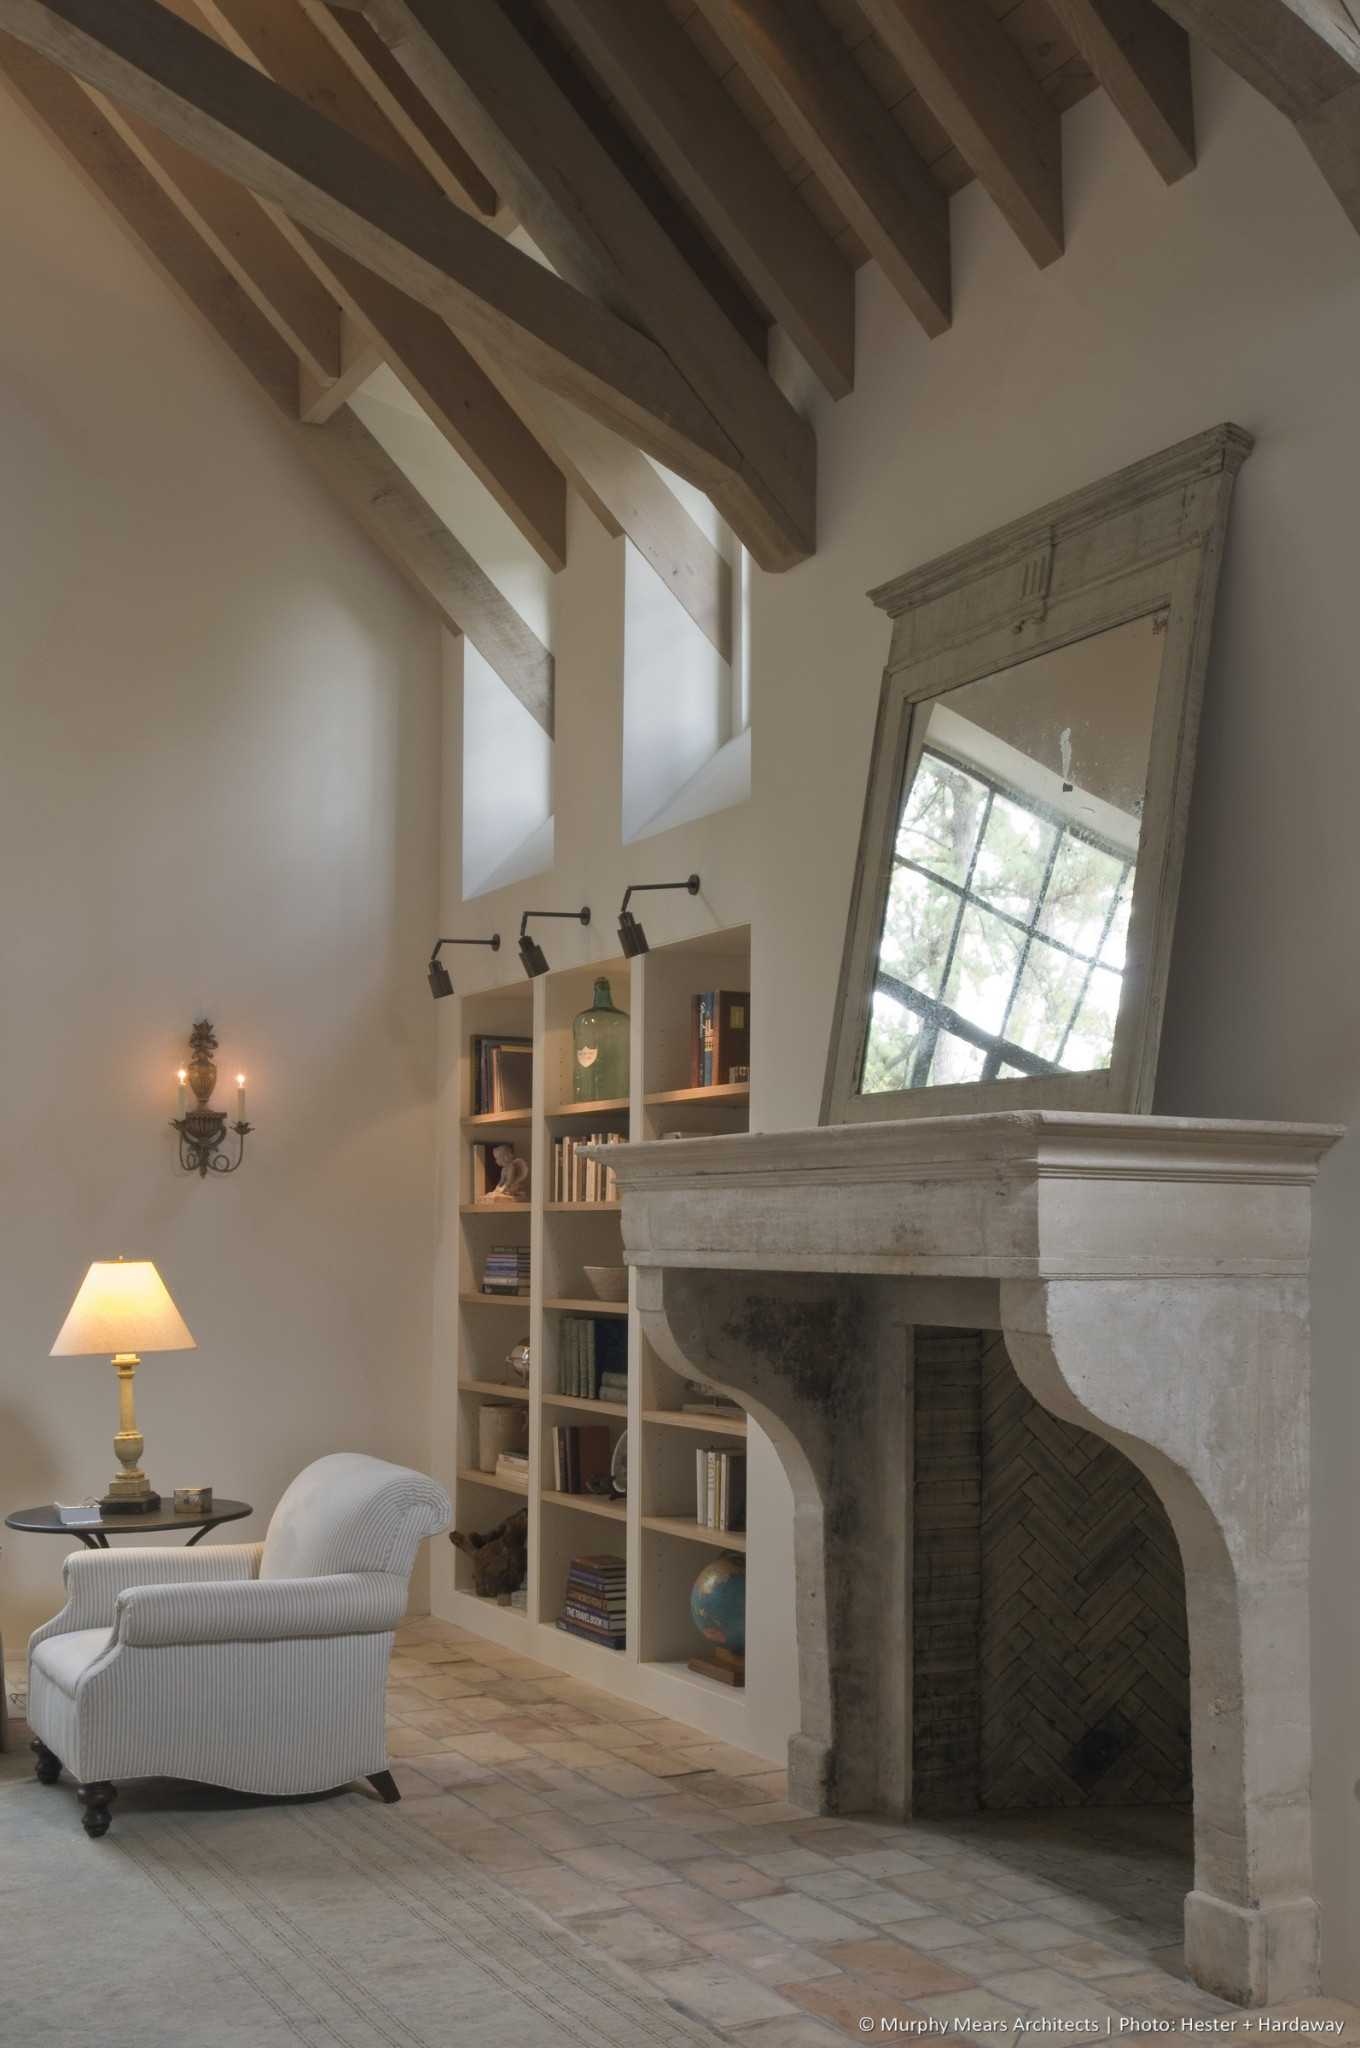 Lindenwood Residence - Large antique fireplace surround in the Living Room, located between bookshelves and dormer windows on each side.